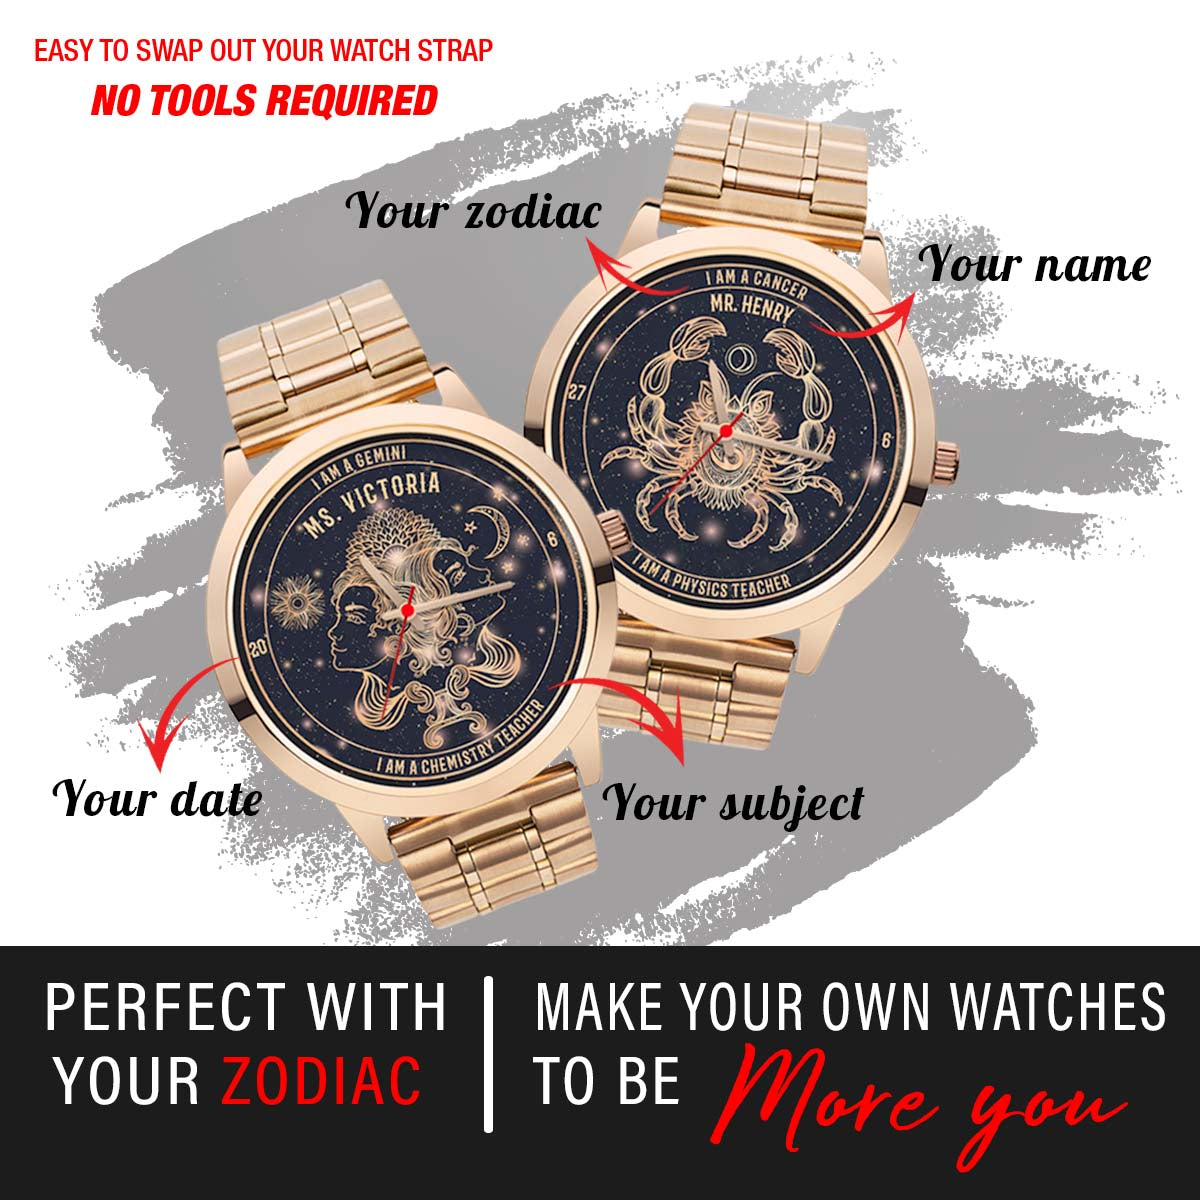 PERSONALIZED WATCH - put your zodiac & your name on your watch